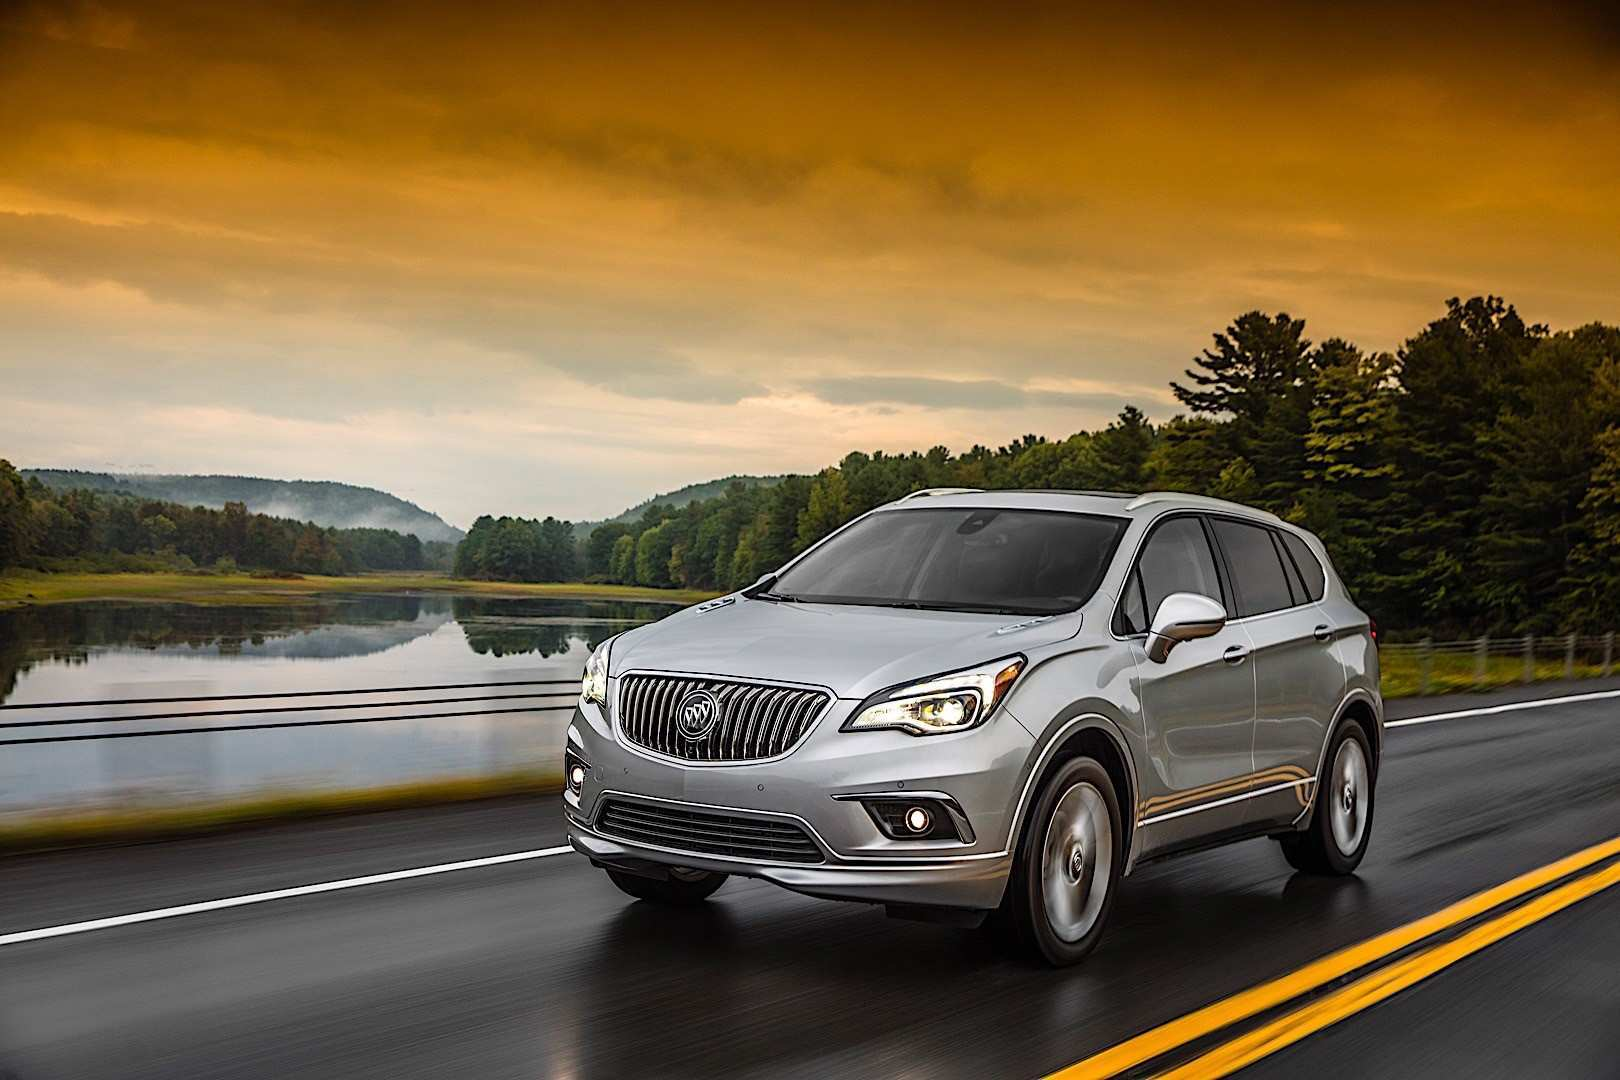 54 All New 2020 Buick Envision Specs Photos with 2020 Buick Envision Specs